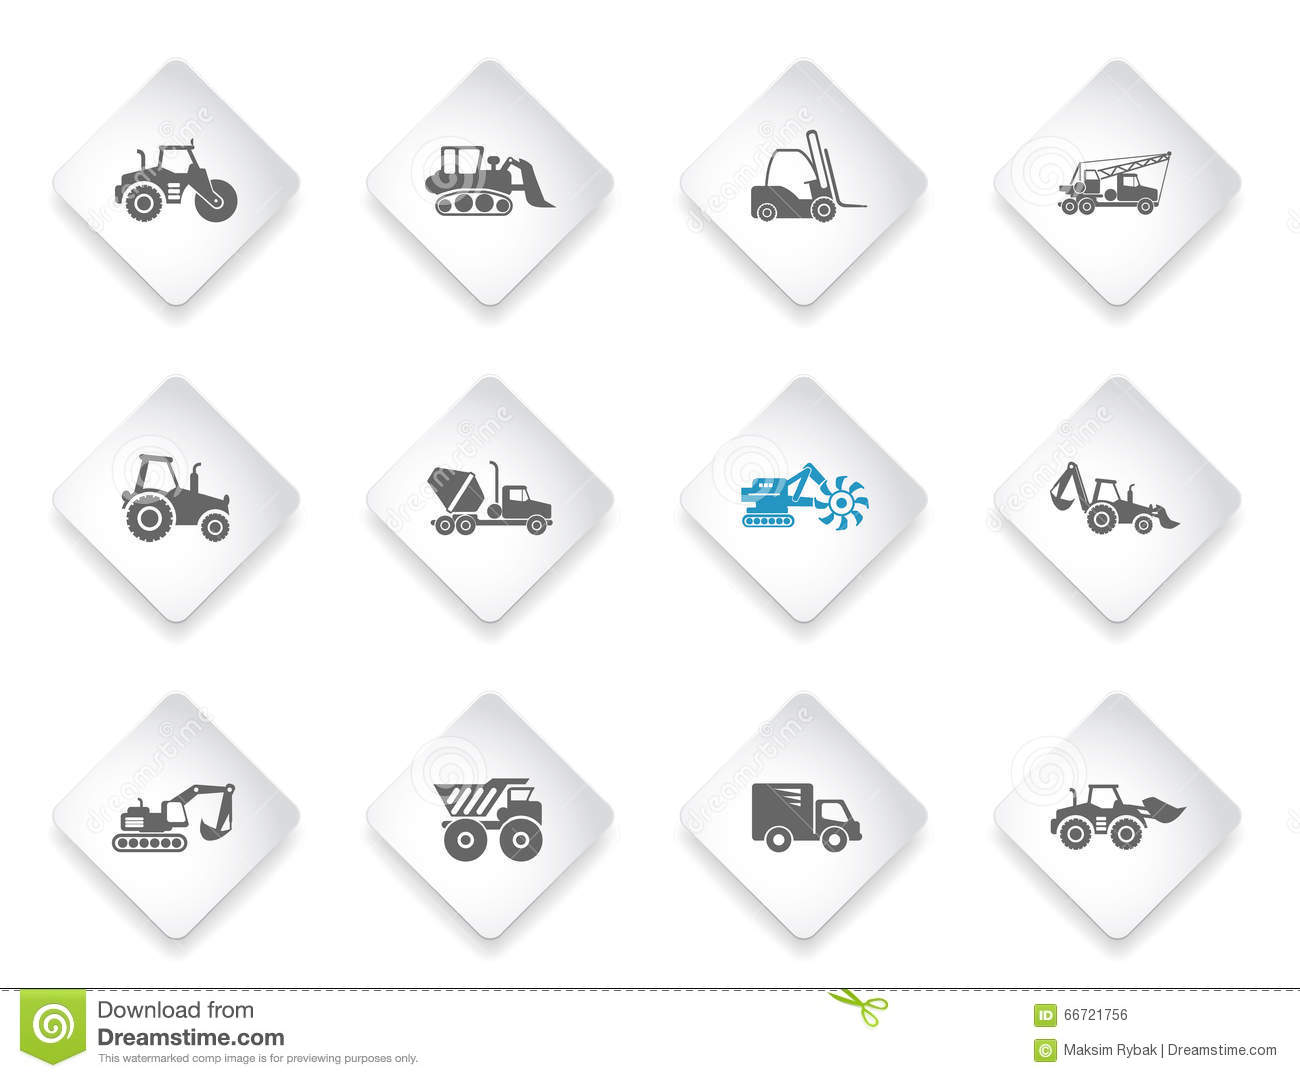 Symbols of construction machines stock vector illustration of symbols of construction machines buycottarizona Image collections